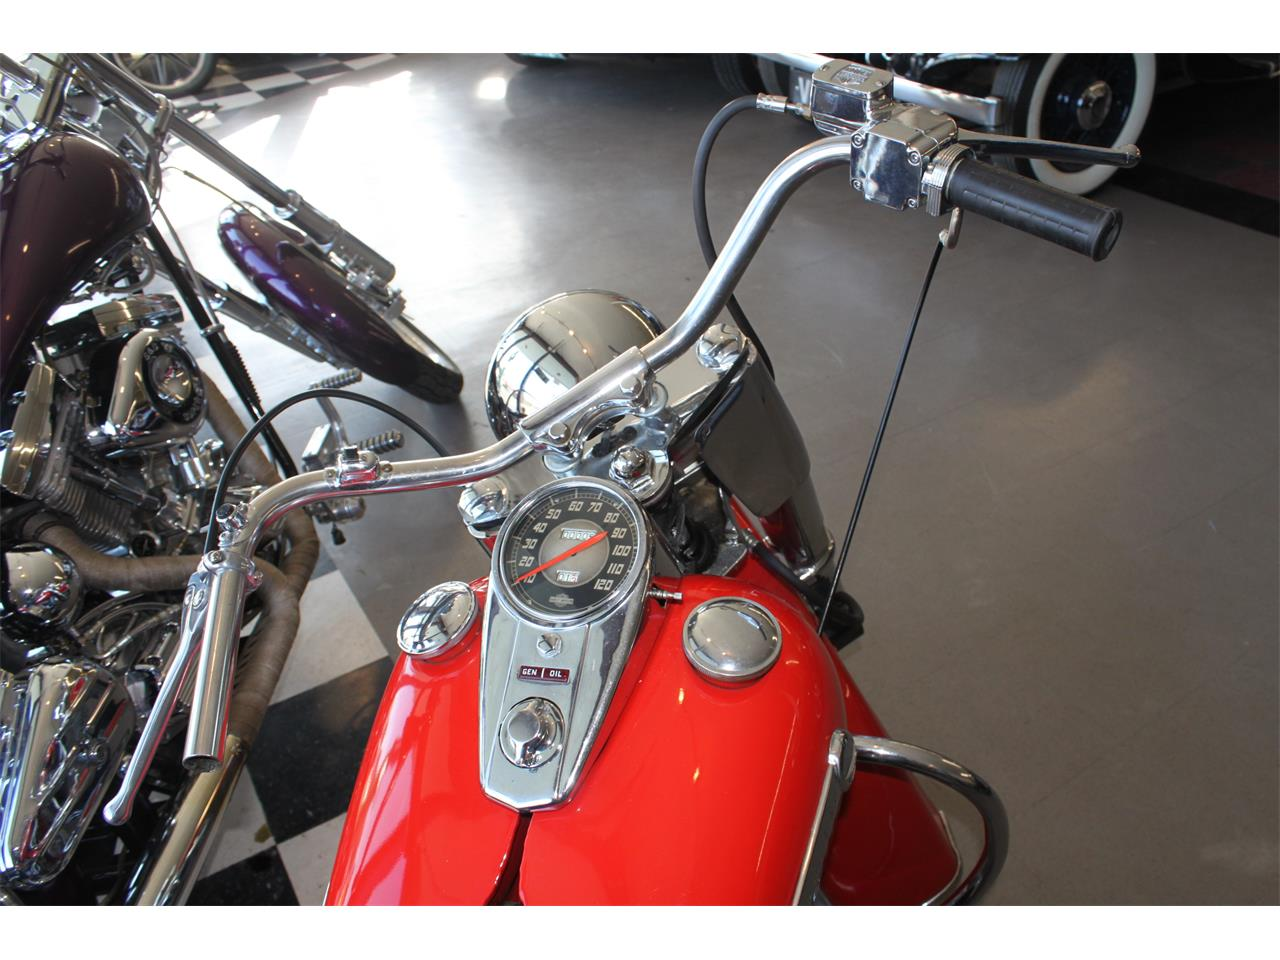 1950 Harley-Davidson Motorcycle for sale in Carnation, WA – photo 15